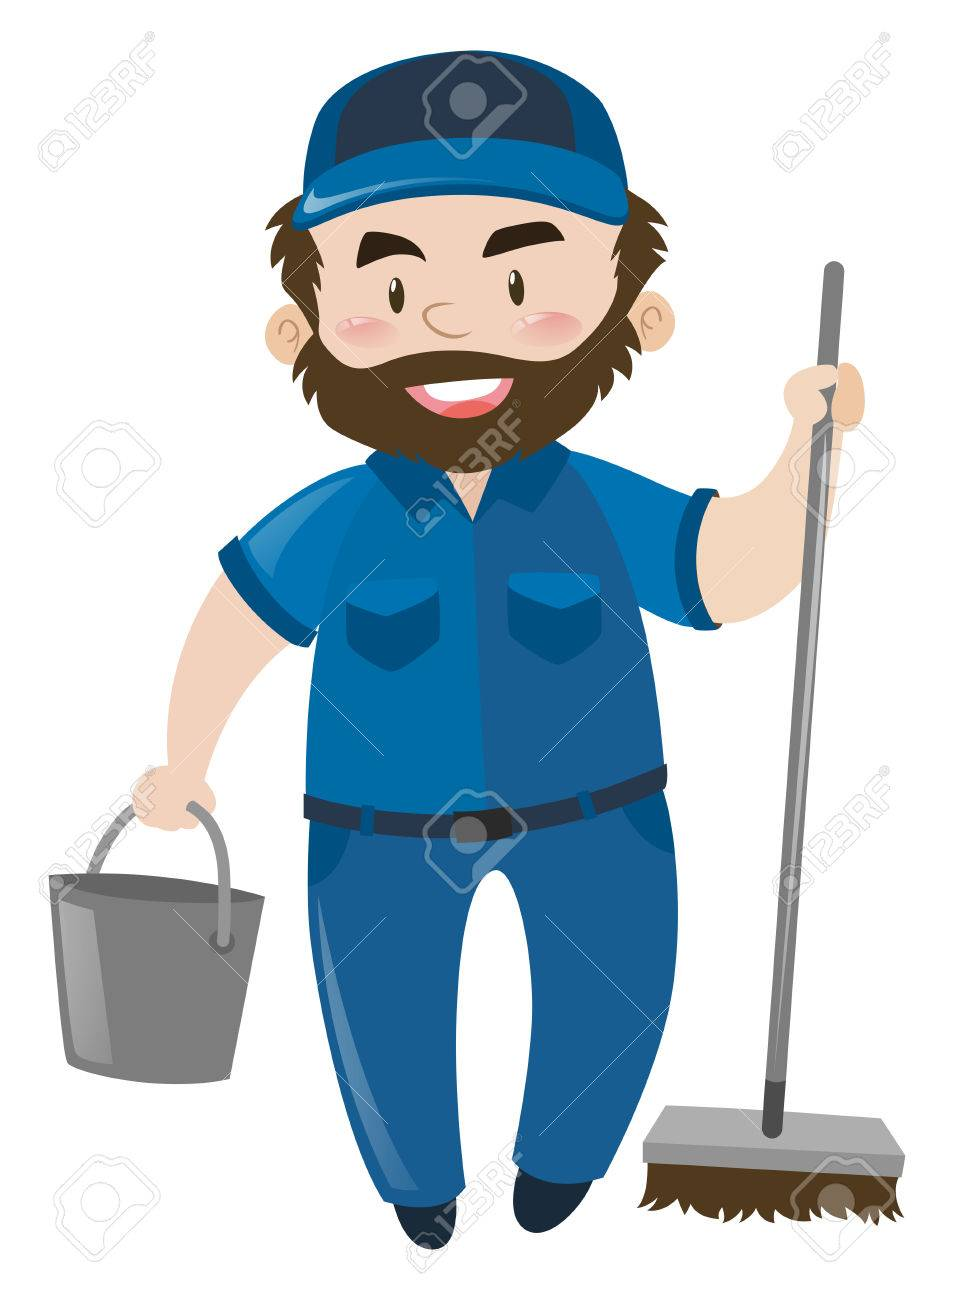 male janitor in blue uniform illustration royalty free cliparts rh 123rf com janitor clip art images janitor clipart images